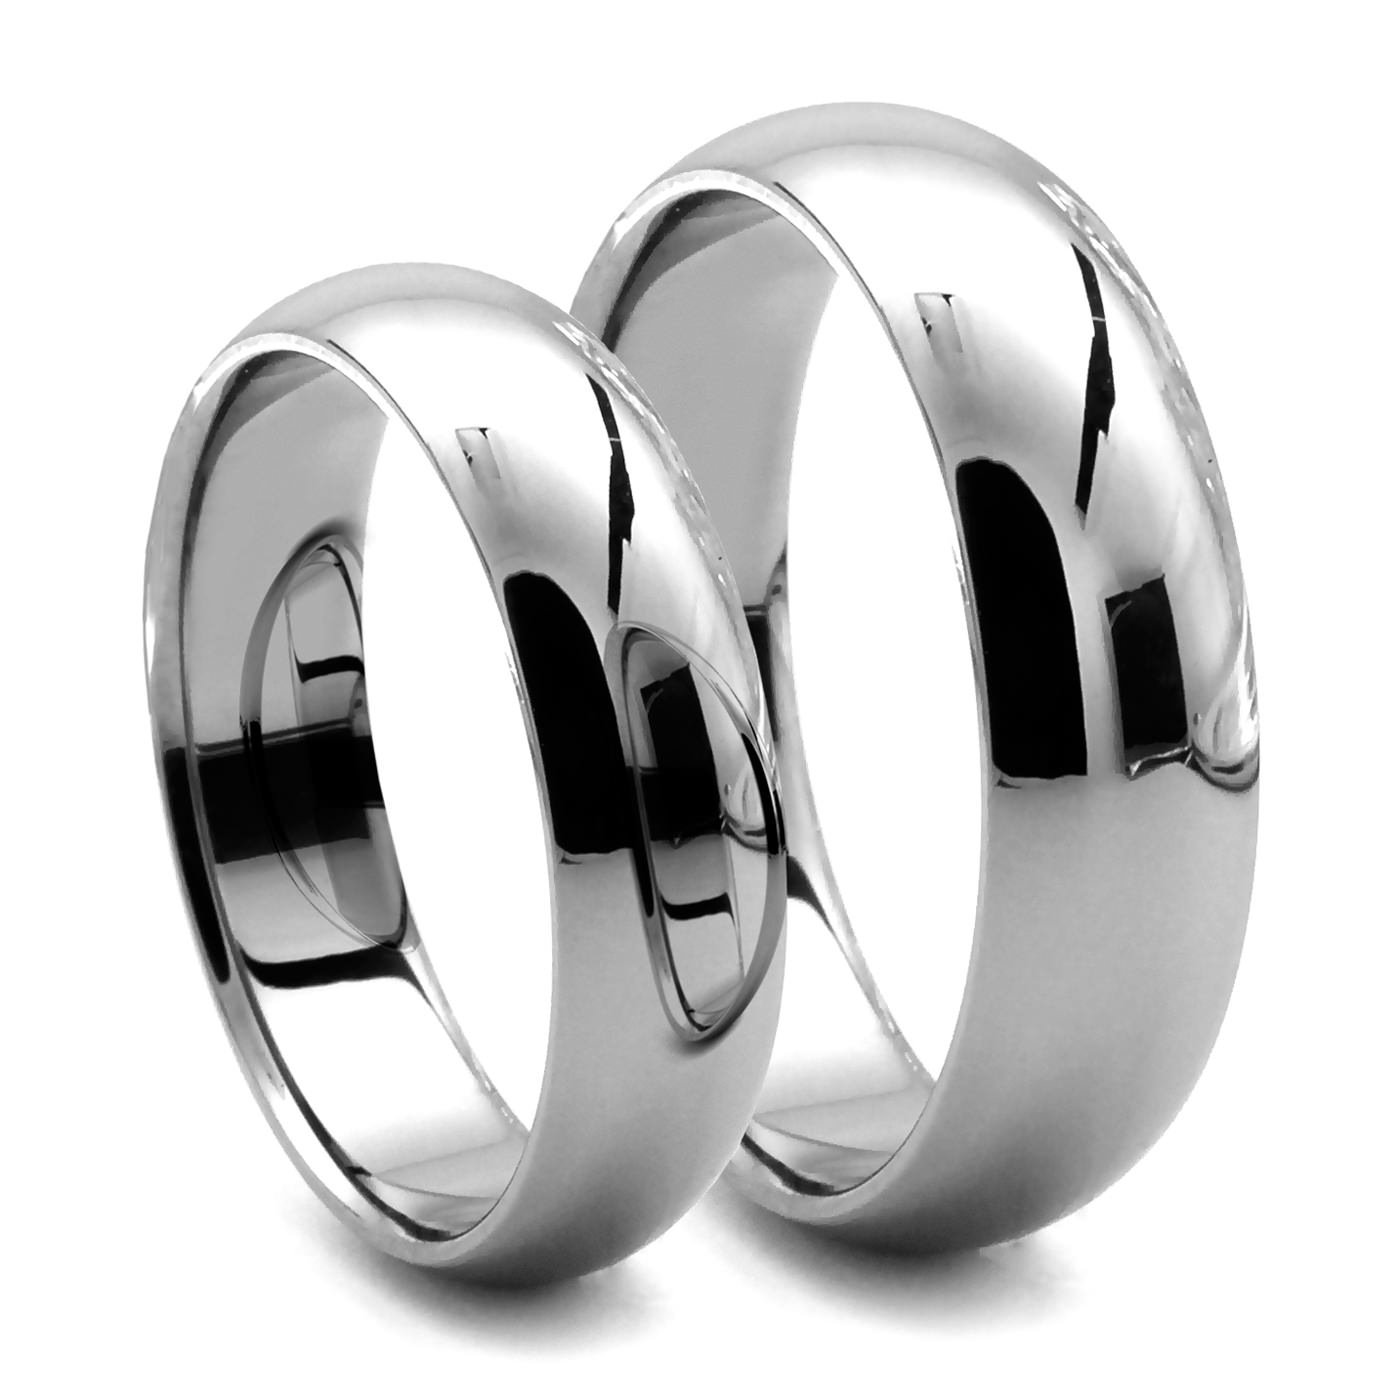 male men women silver platinum steel not product plated gold titanium classic wedding real ring lovers bands cheap band fade do quality jewelry top white